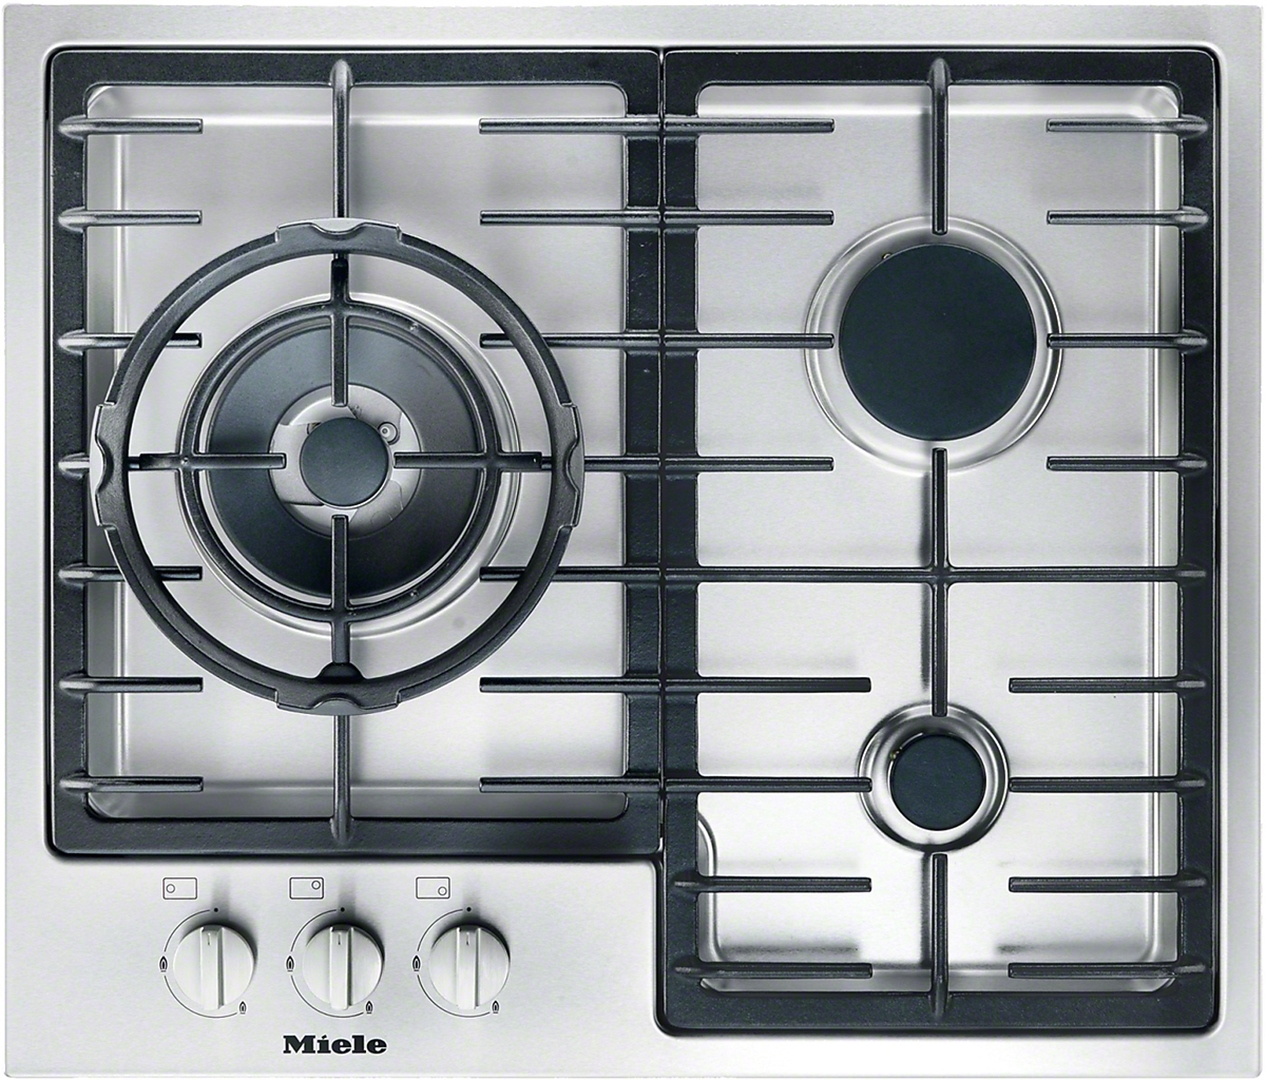 miele km 2312 g gas hob. Black Bedroom Furniture Sets. Home Design Ideas